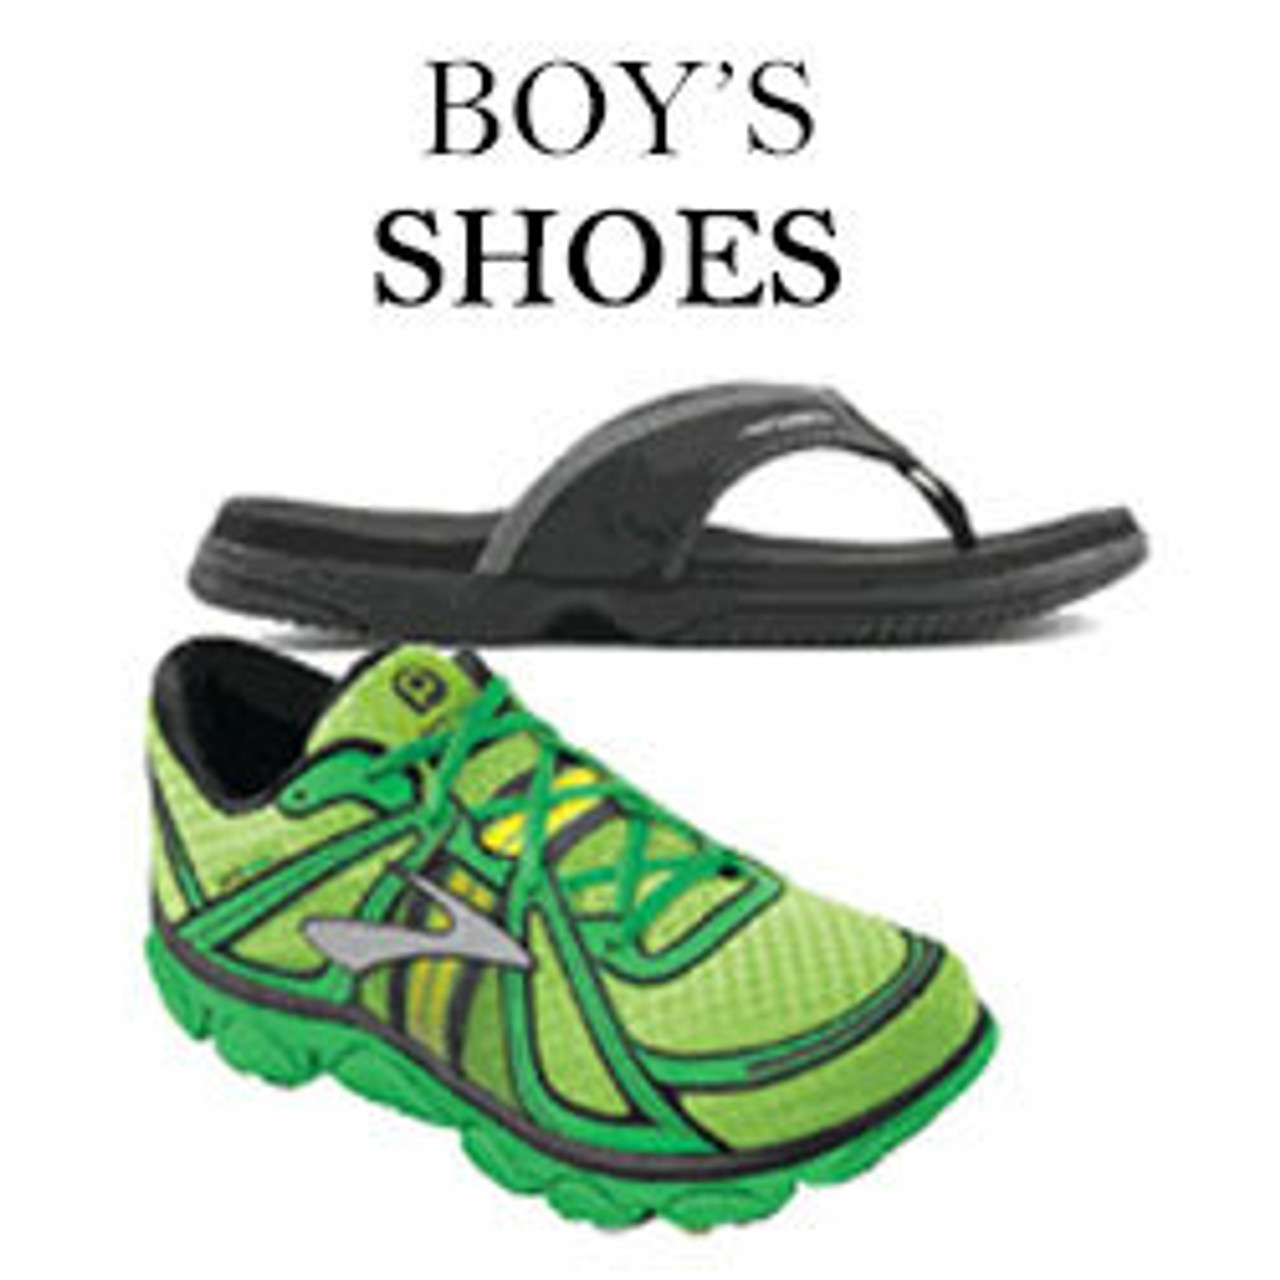 Orthopedic Shoes For Boys